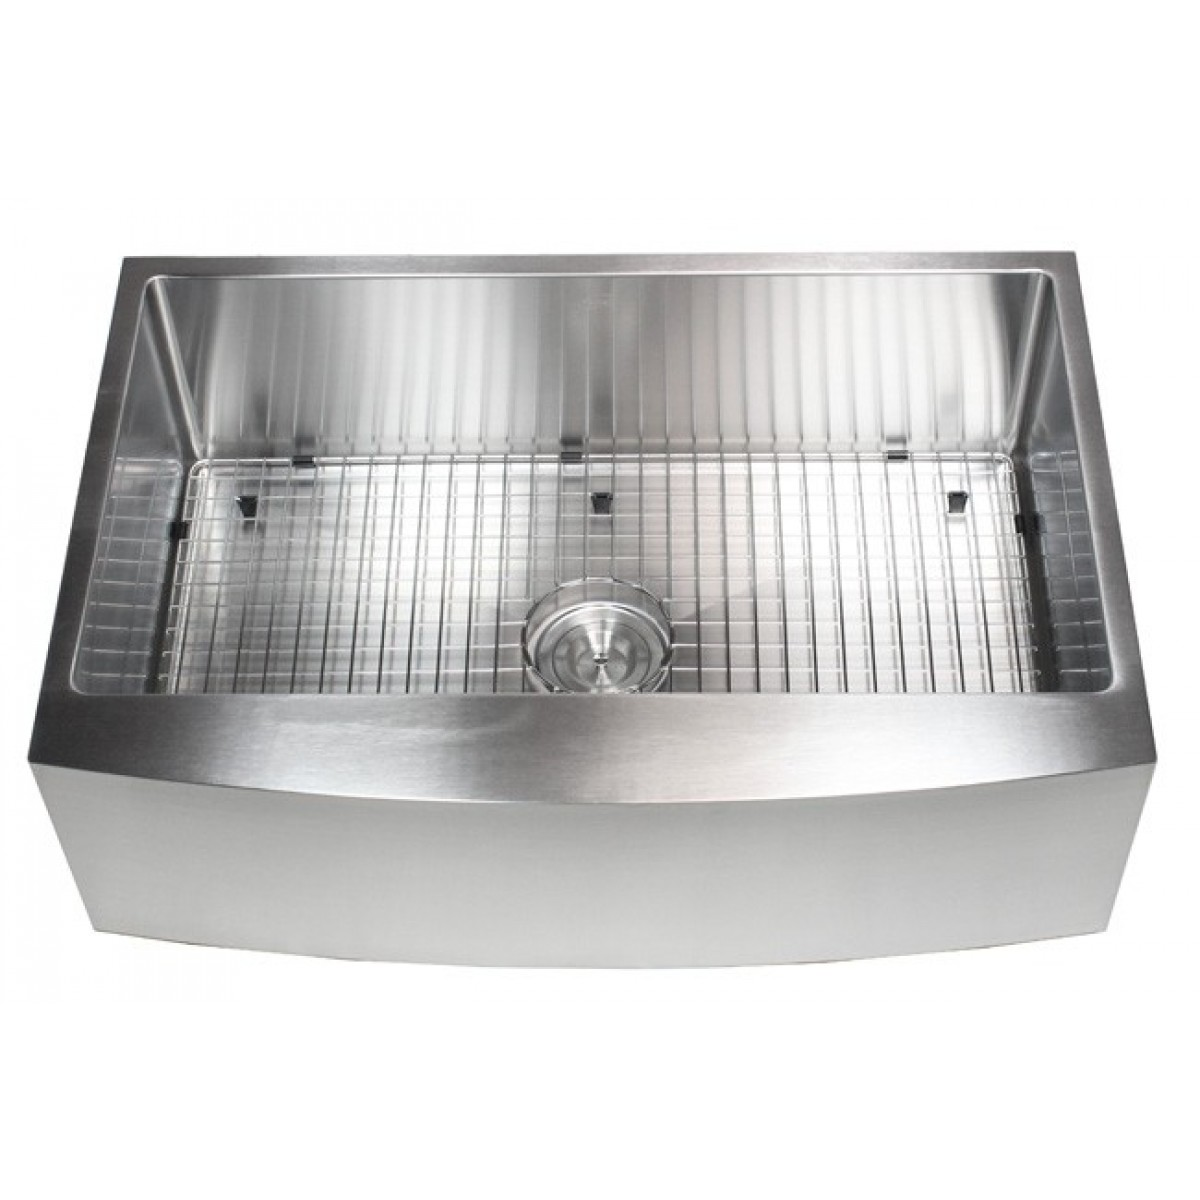 7 Inch Apron Front Sink : Inch Stainless Steel Curved Front Farm Apron Single Bowl Kitchen Sink ...